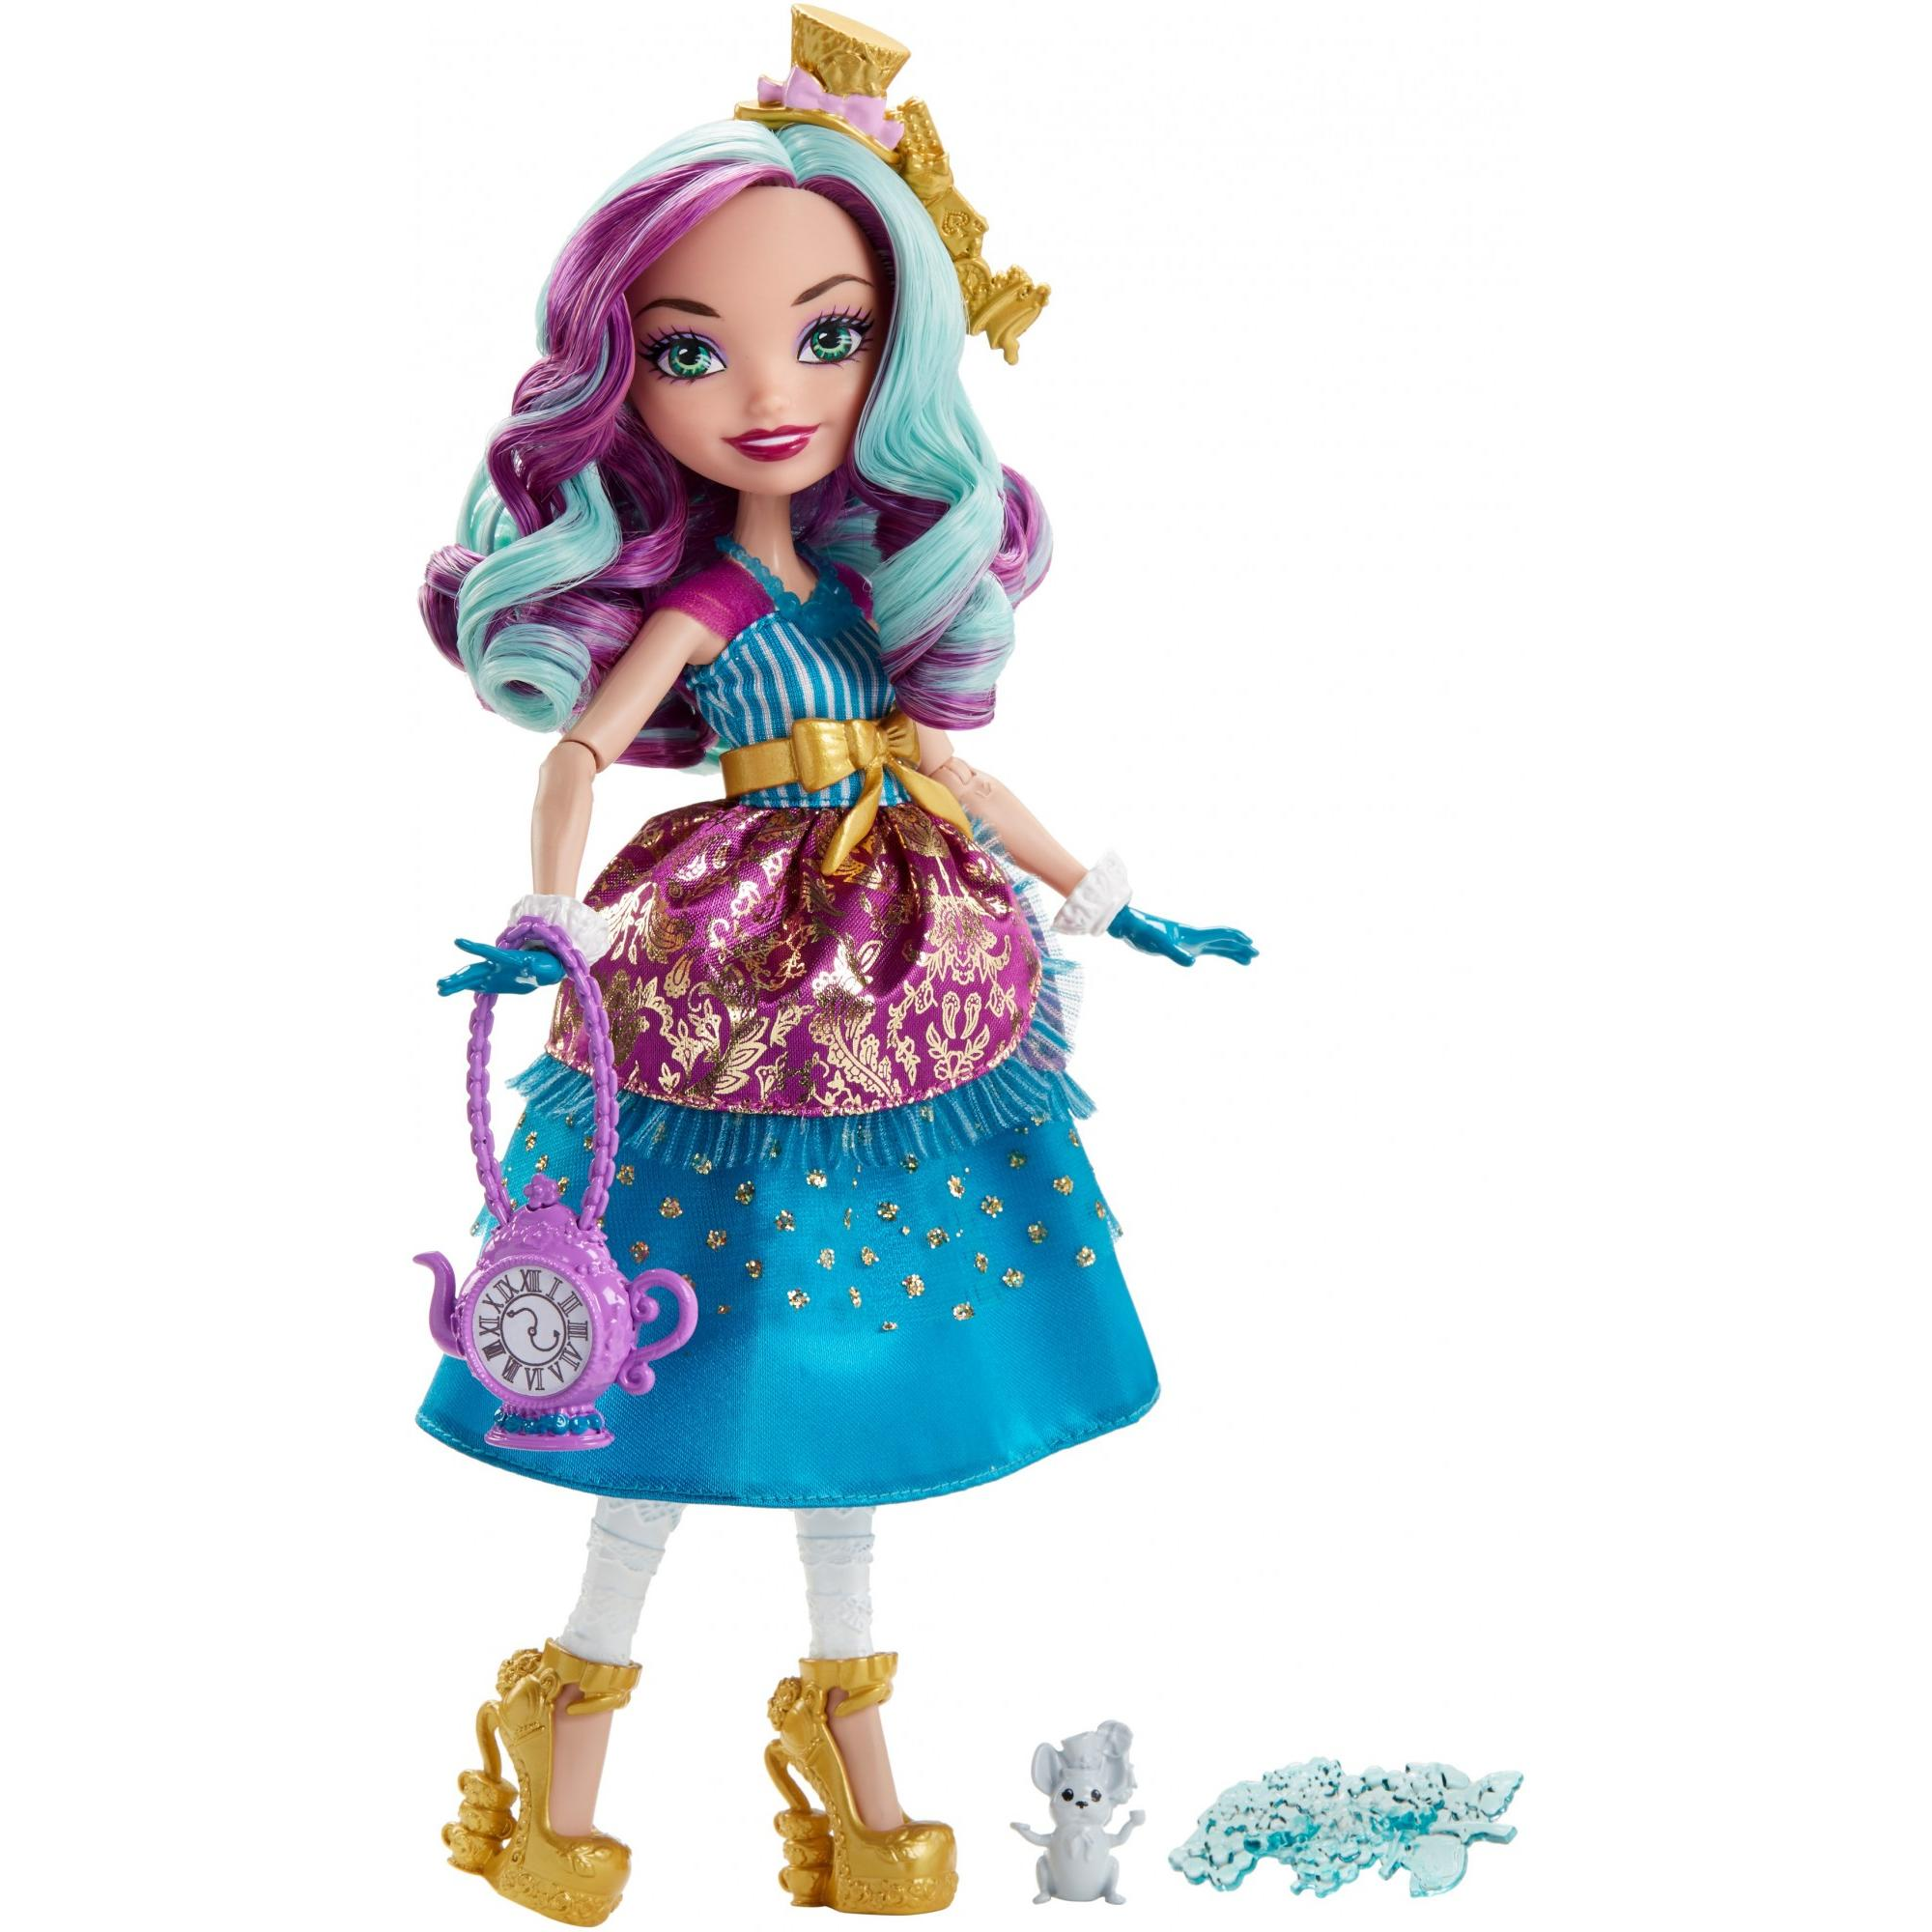 Ever After High Madeline Hatter Powerful Princess Doll by MATTEL INC.